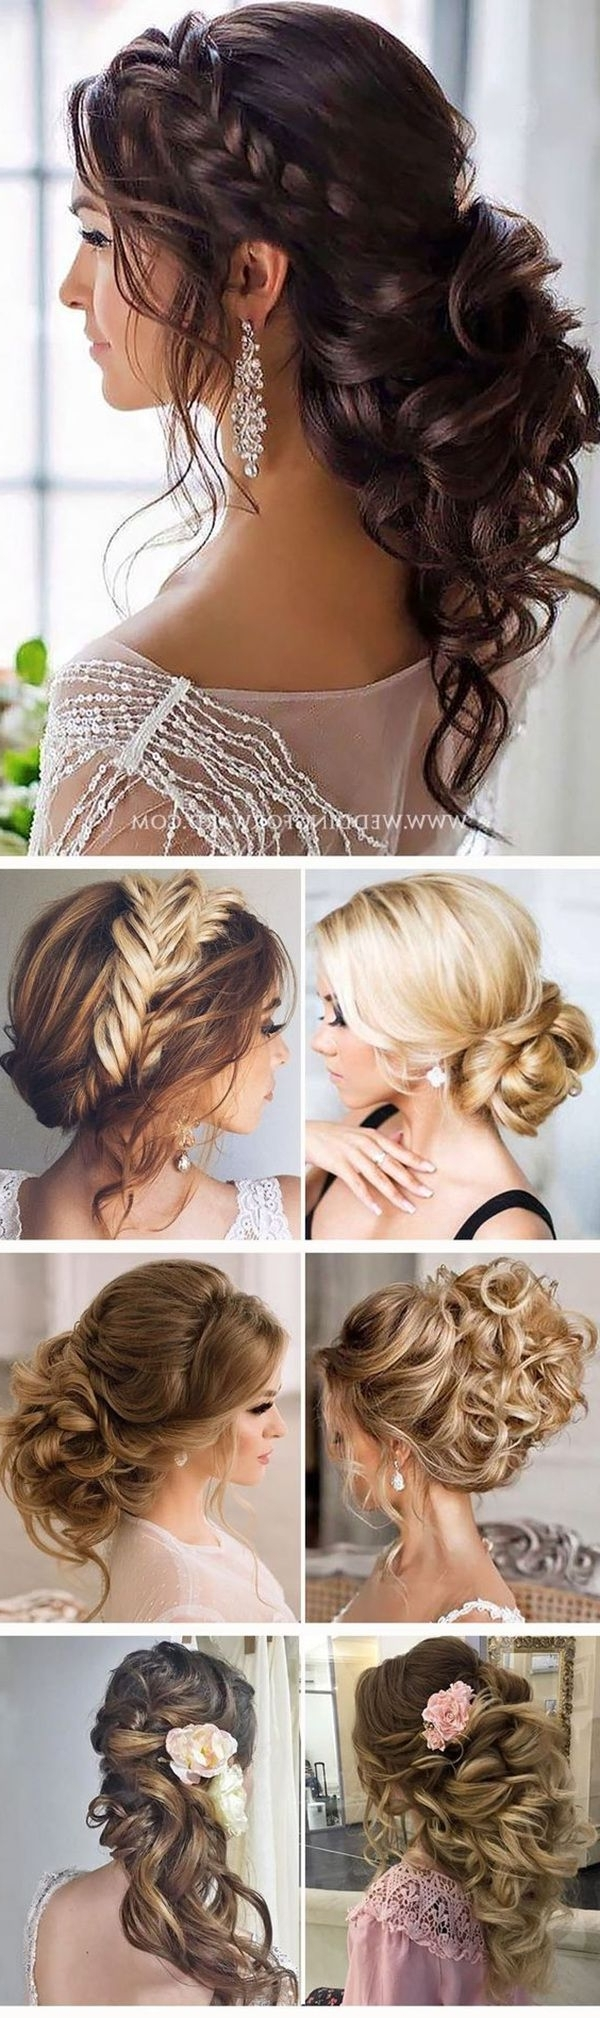 2017 Wedding Hairstyles For Long Hair With Crown Pertaining To Braided Flower Crown Hair Tutorial Kassinka2Iy Hairstyles For Long (View 3 of 15)